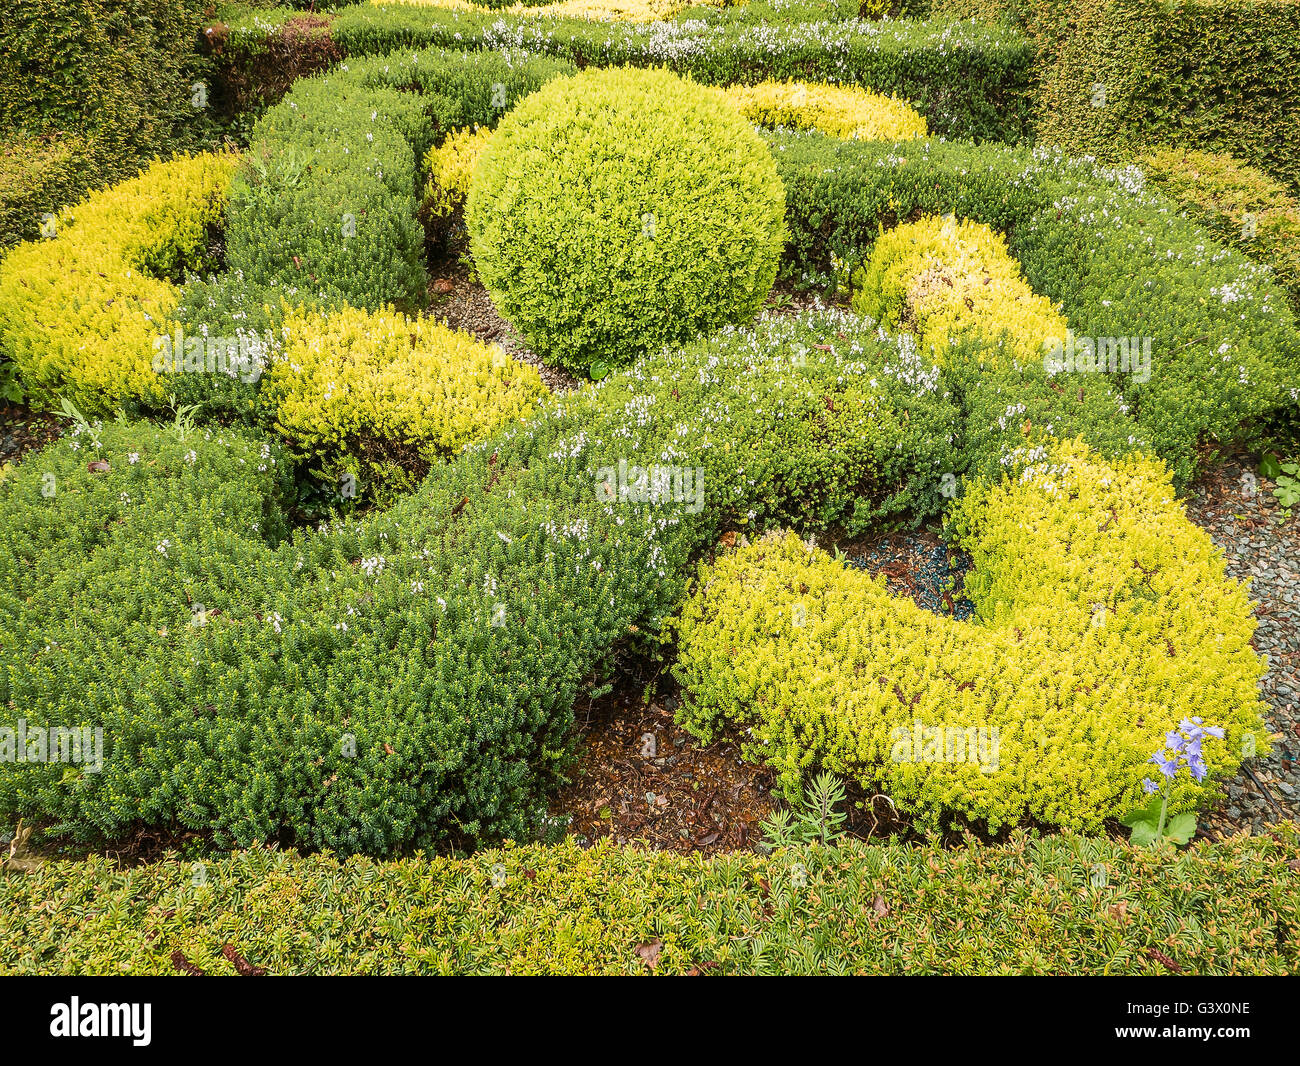 Enigmatic knot garden formed from box and erica plants Stock Photo